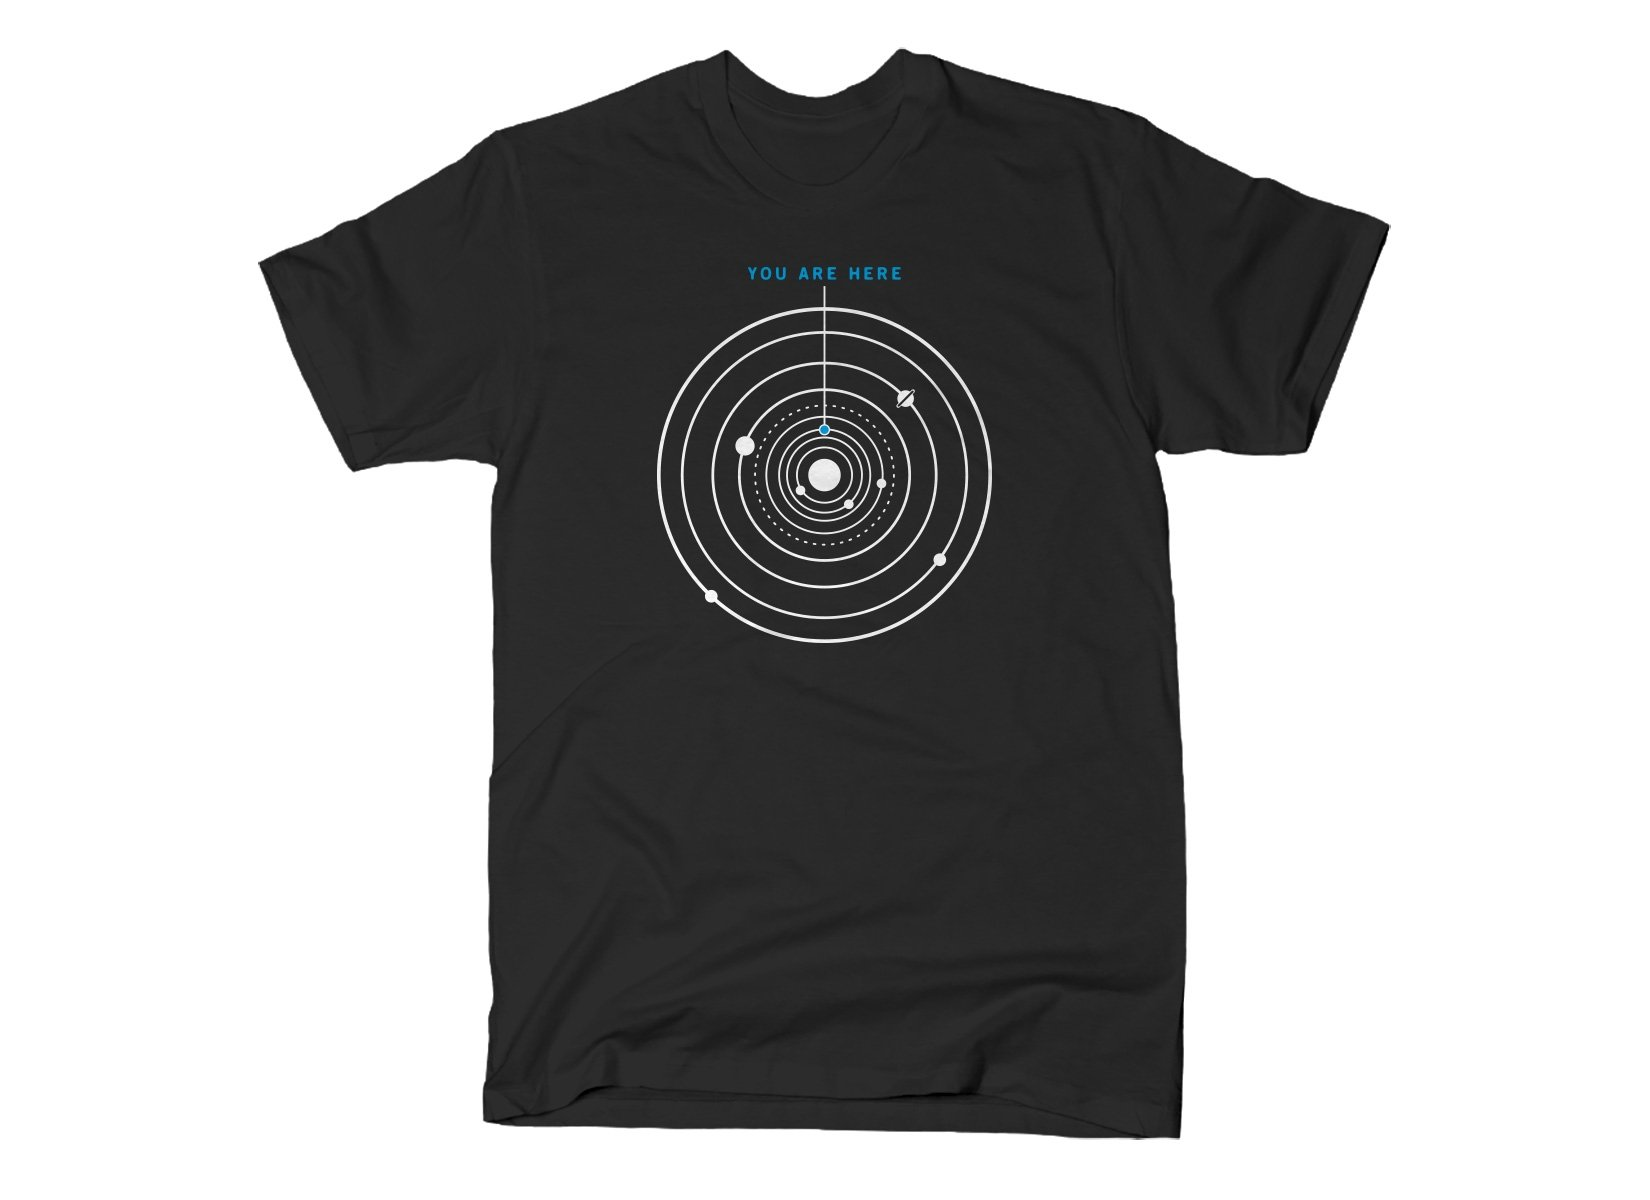 You Are Here on Mens T-Shirt